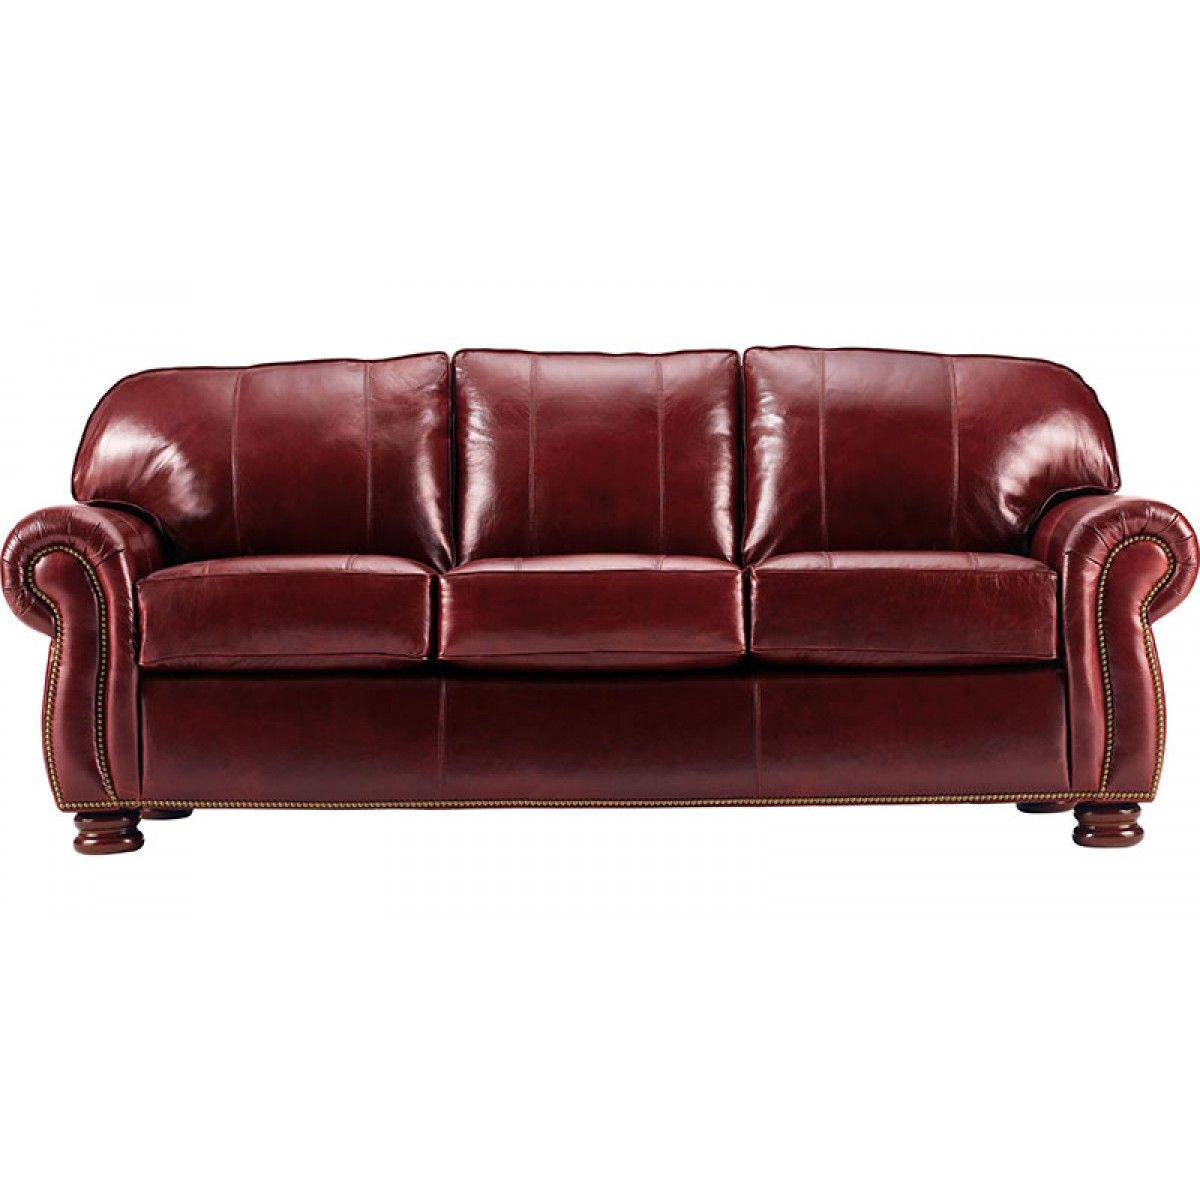 Thomasville Upholstery Leather Benjamin